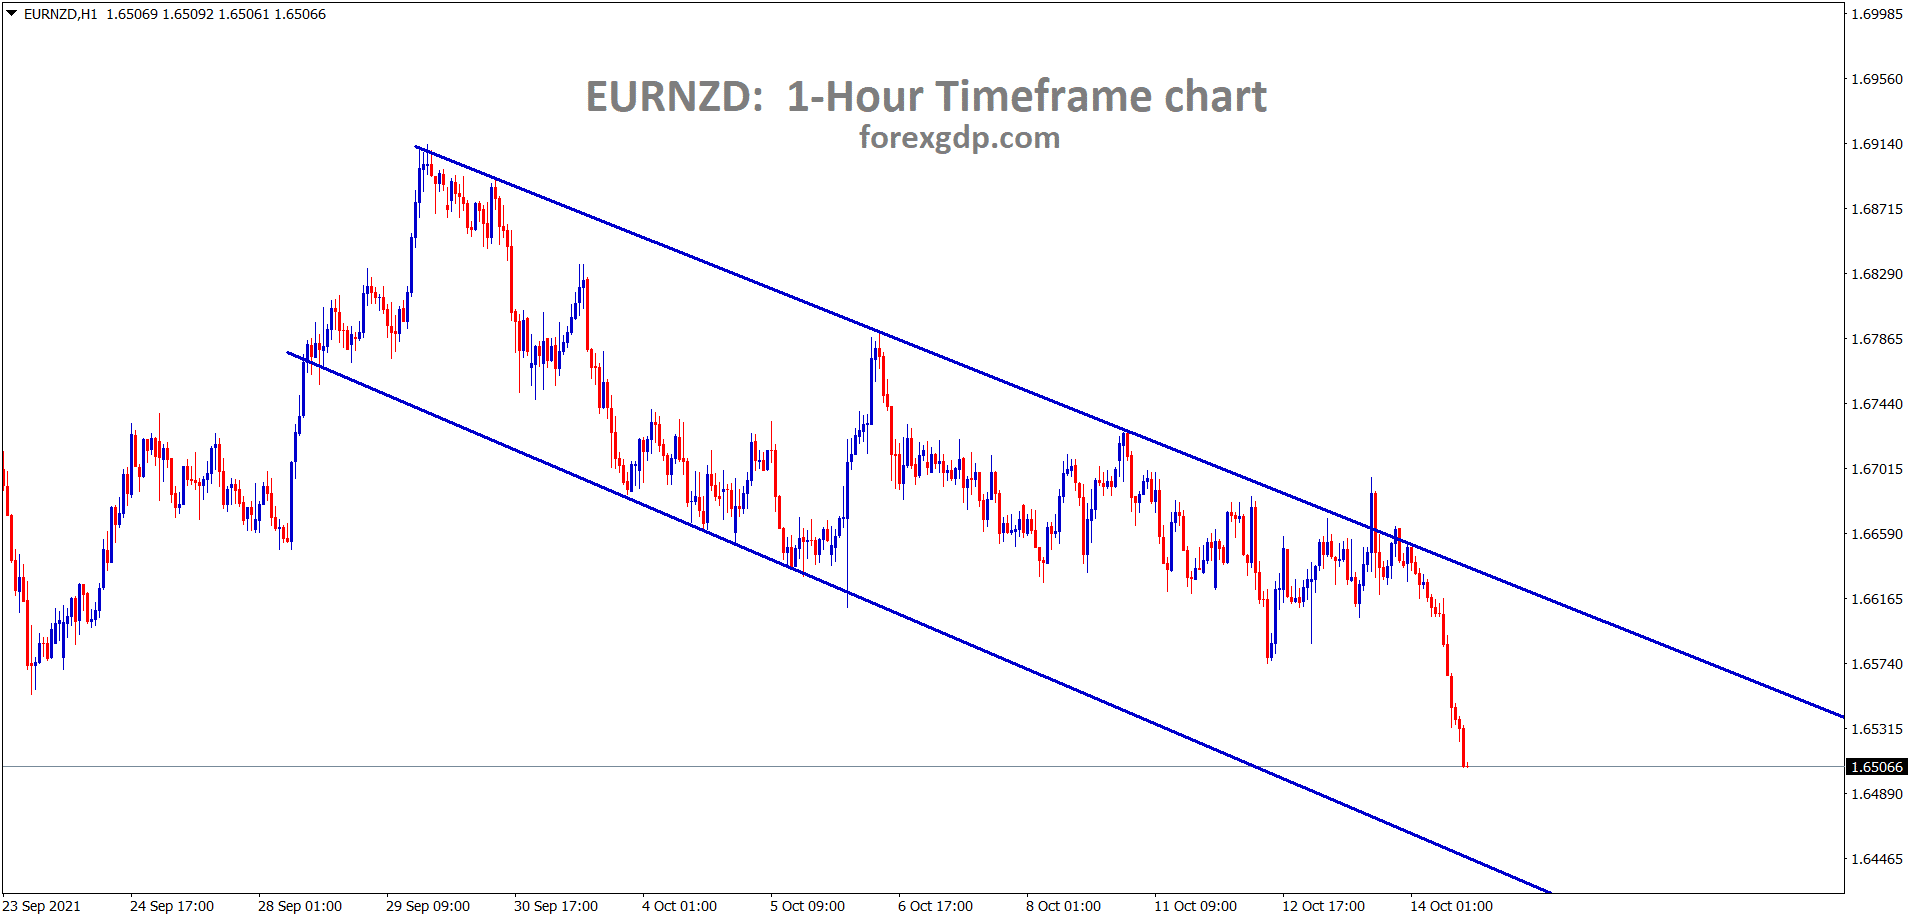 EURNZD is moving in a downtrend creating further lower lows